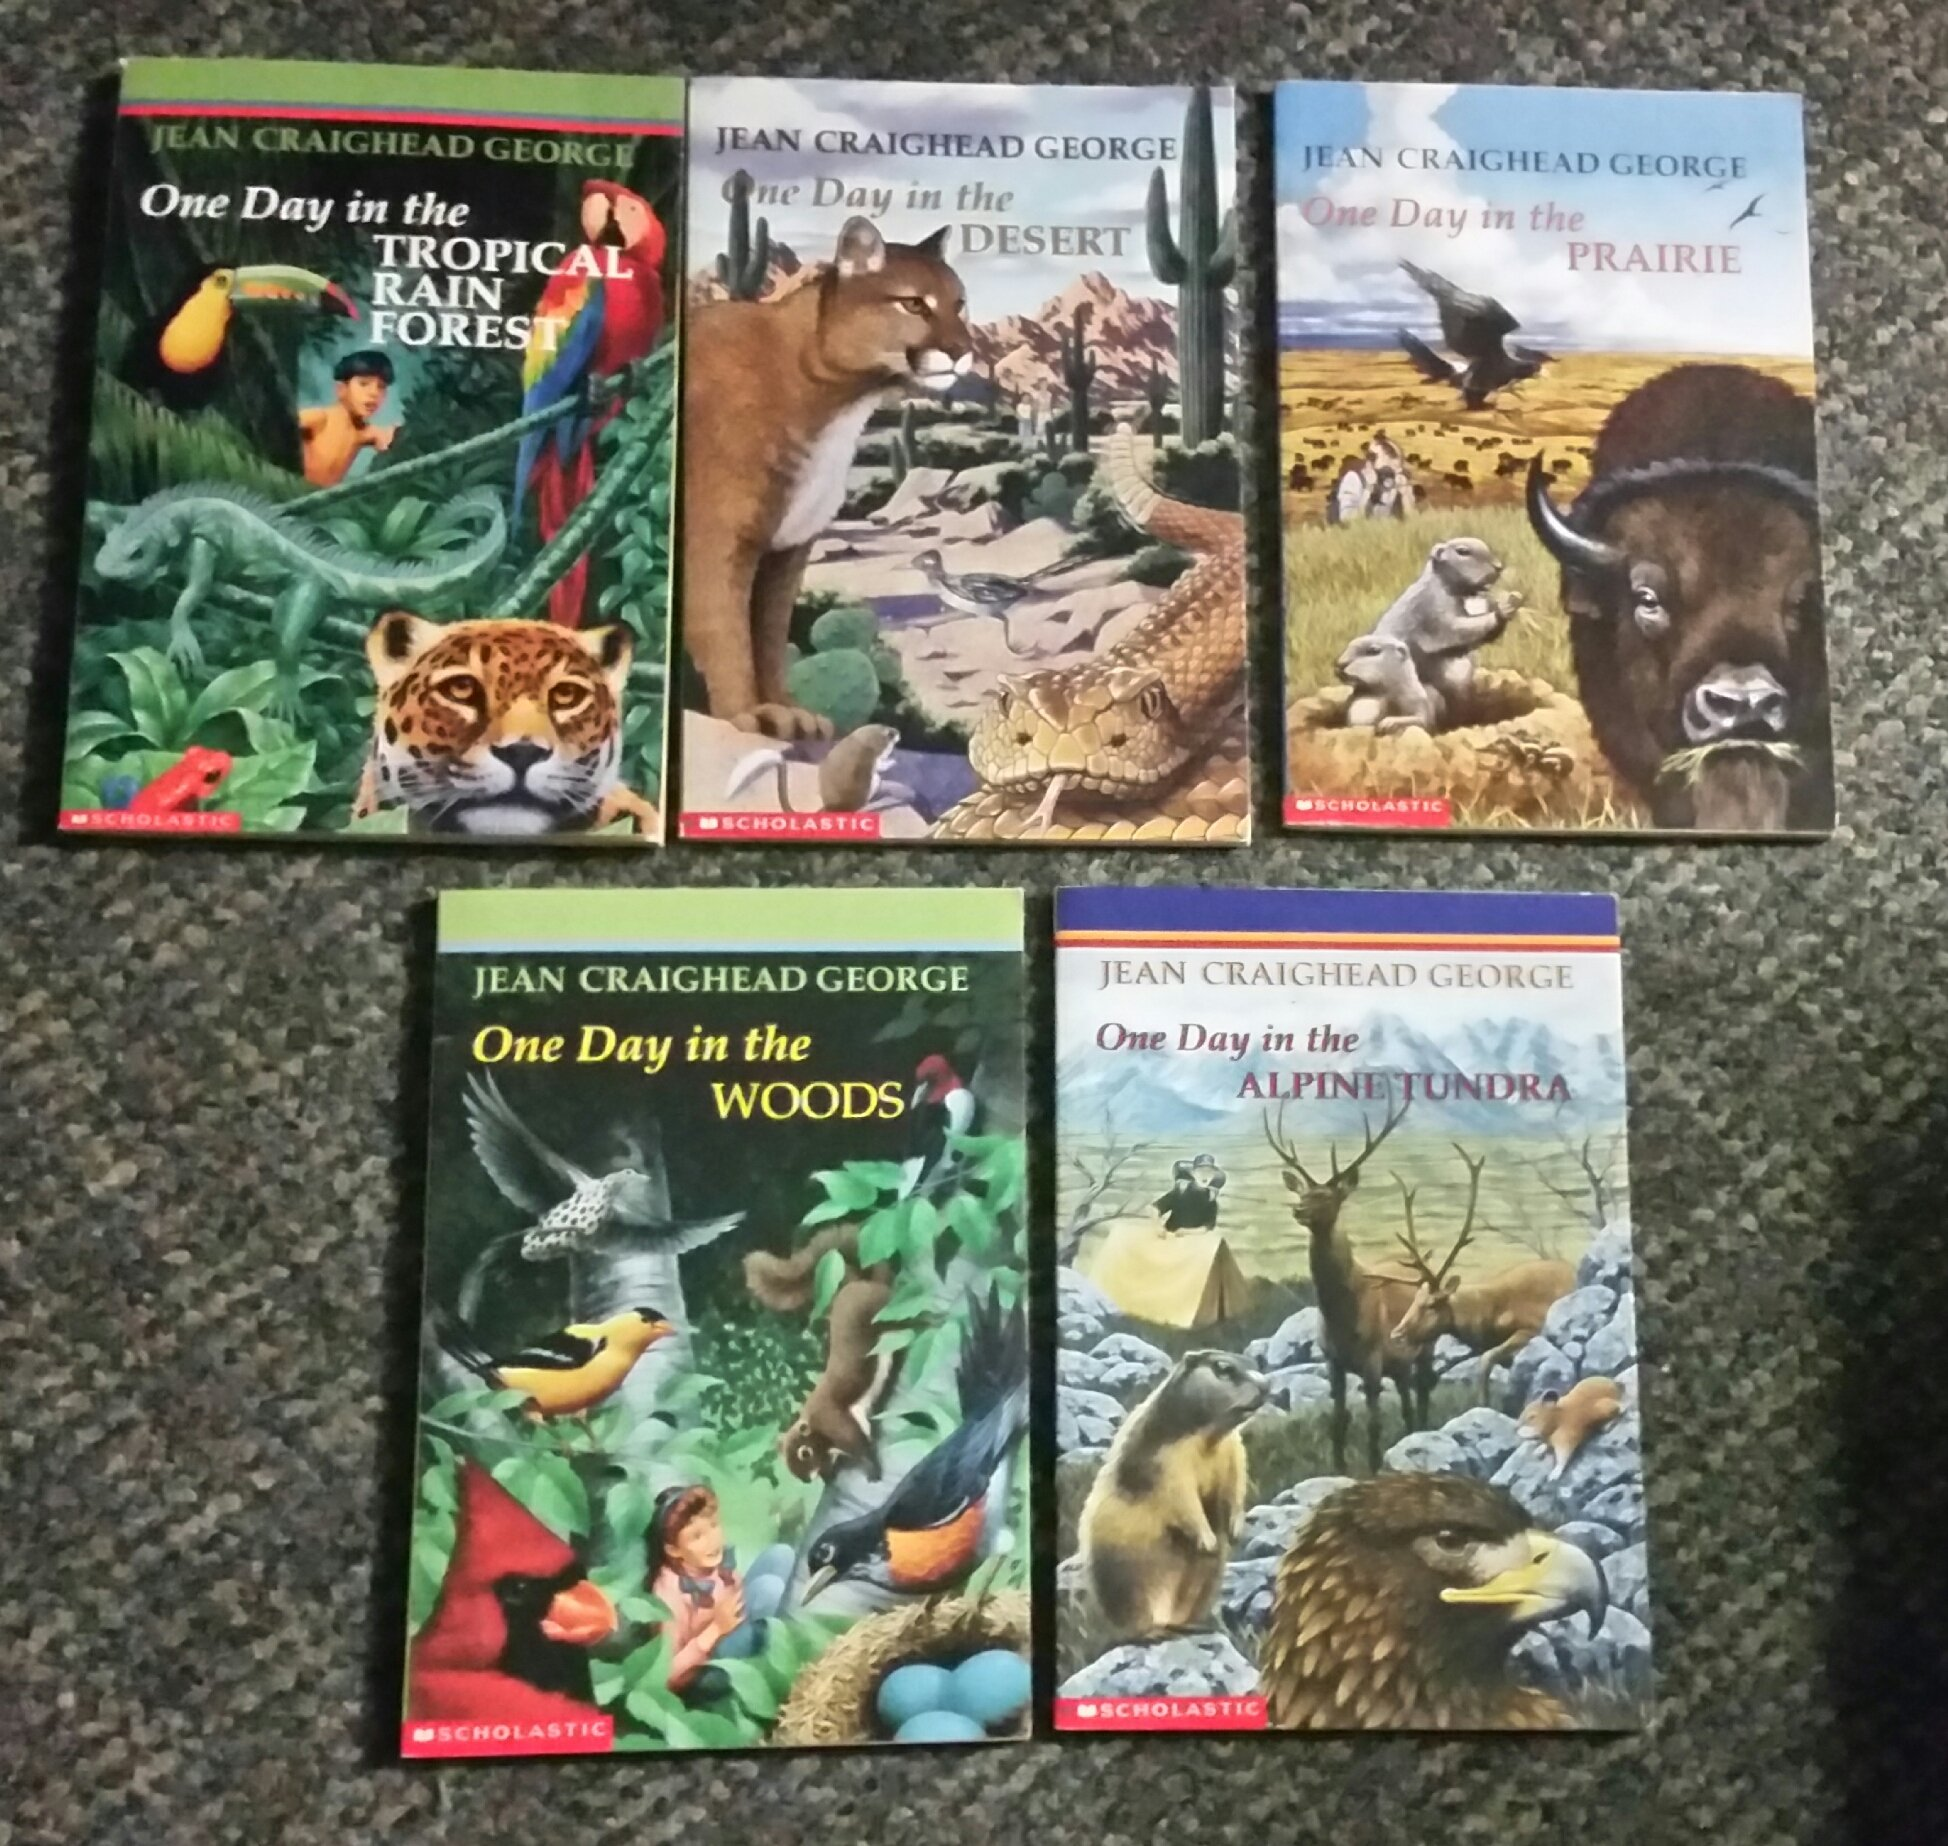 5 Books in One Day Set (One Day in the Woods, ... Prairie, ... Alpine  Tundra, ...Desert, ... Tropical Rain Forest): Jean Craighead George:  Amazon.com: Books